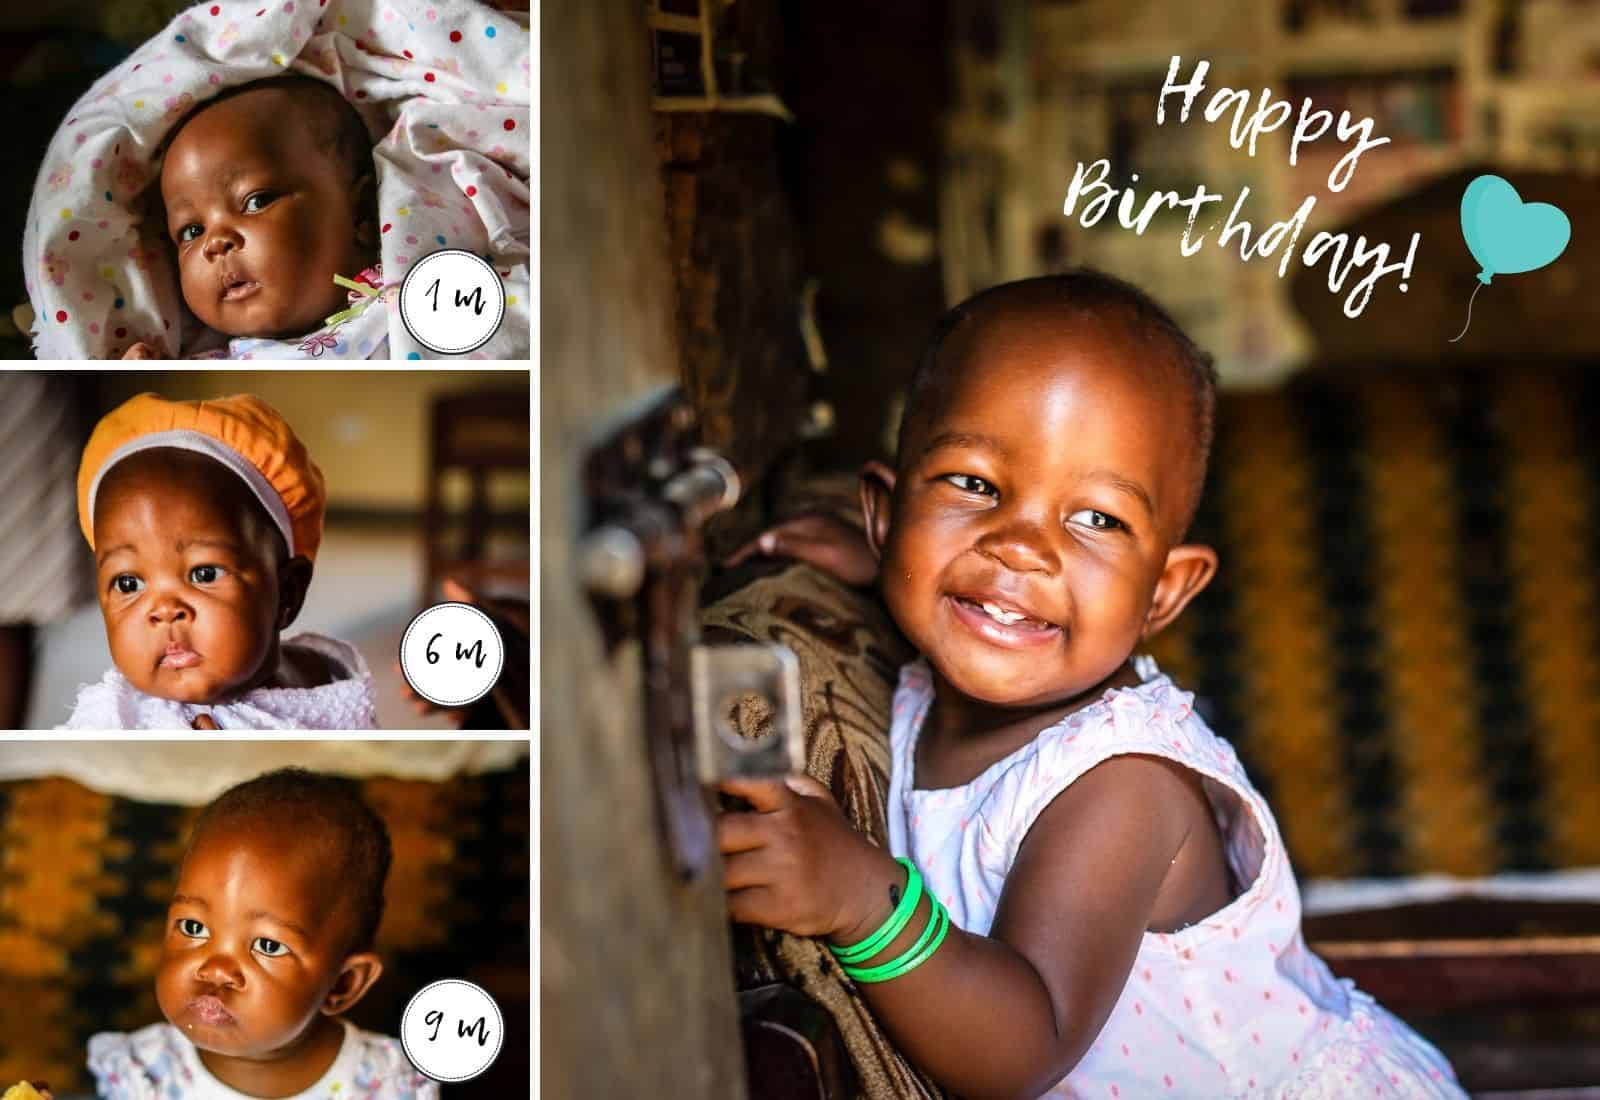 A collage of four pictures of babies at different ages. Text reads: 1 m, 3 m, 6 m and Happy Birthday!